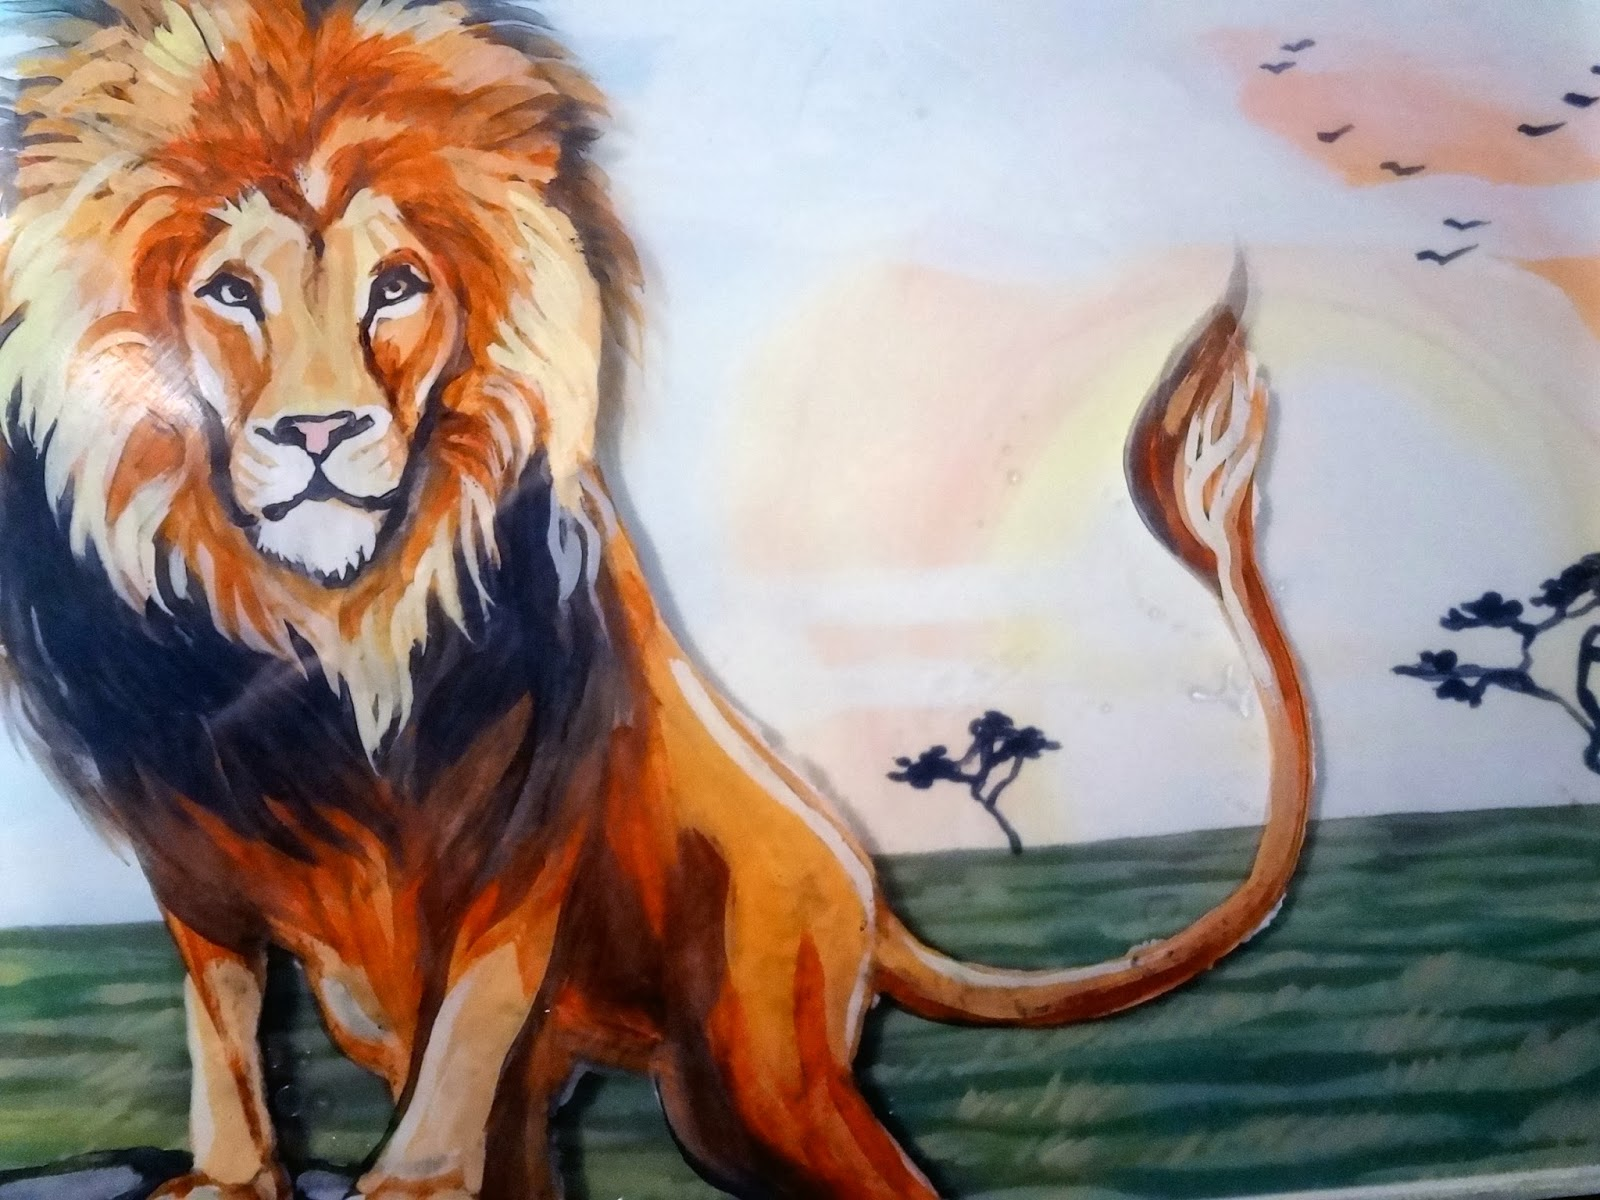 glass art, image transfer onto glass, lion glass art, lion painting